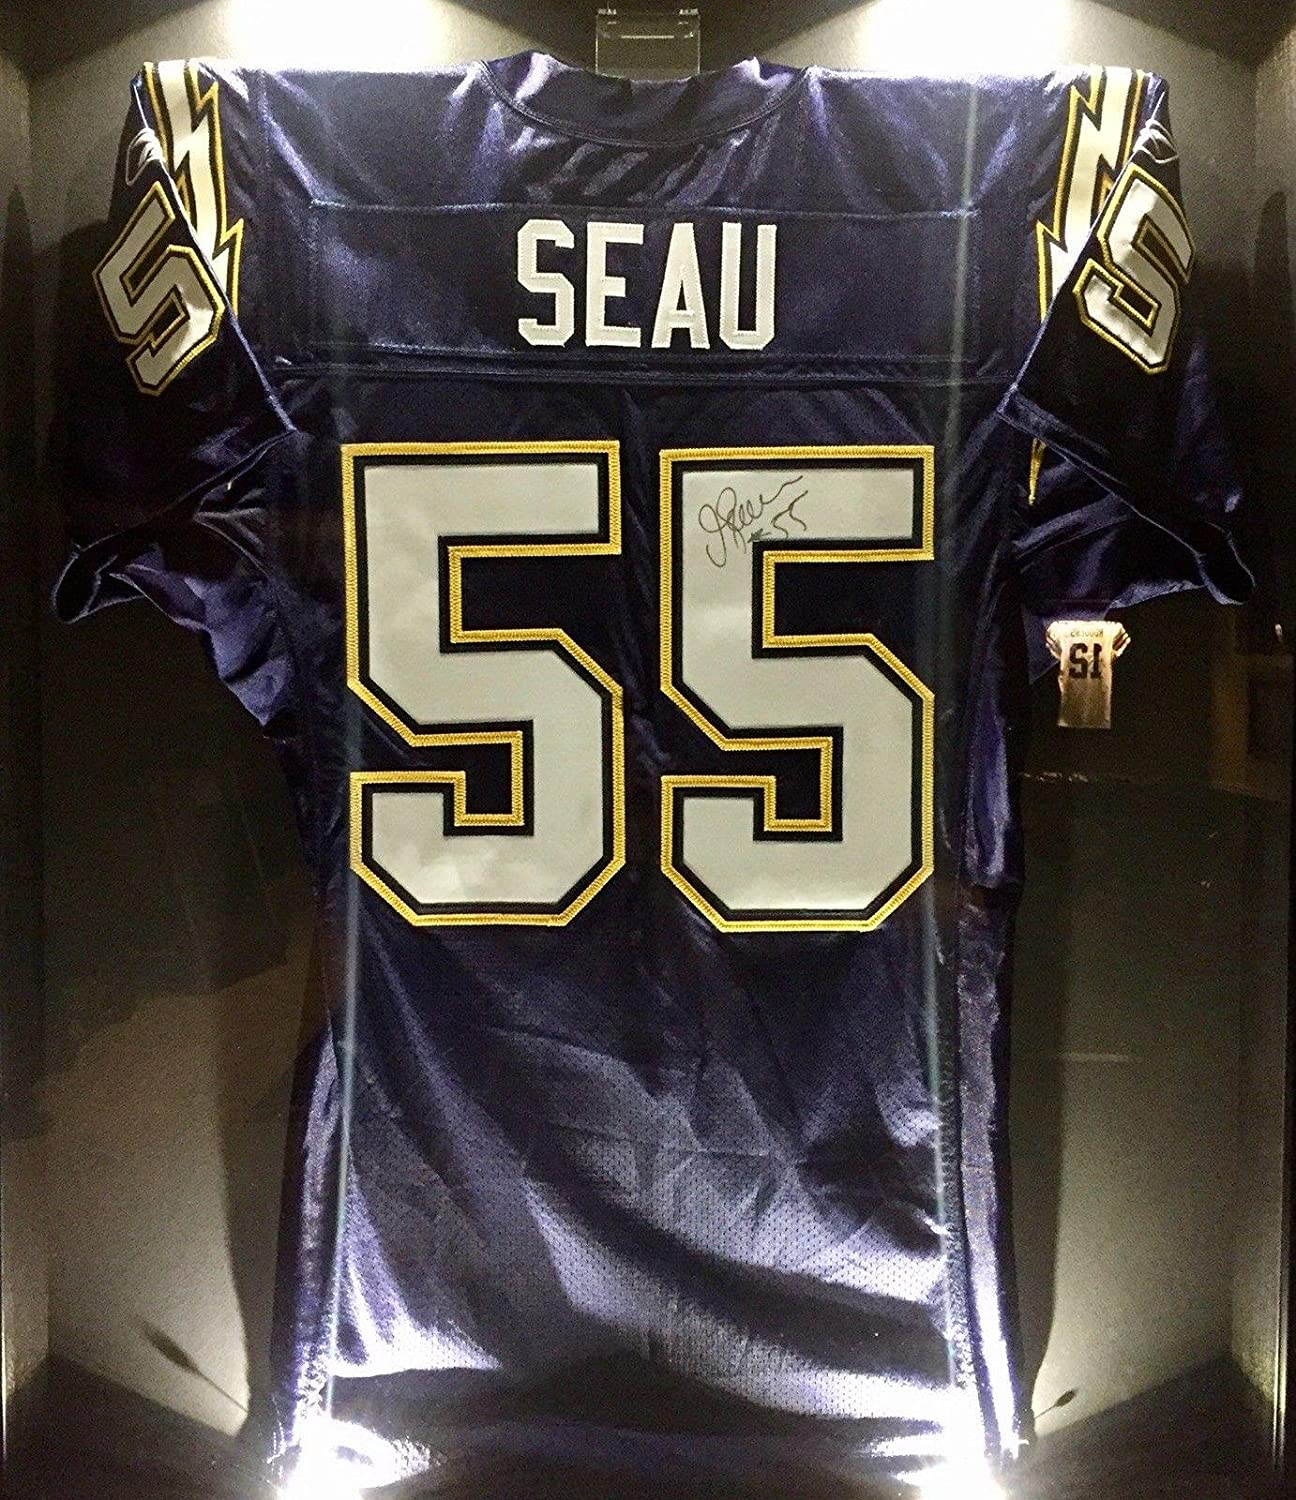 20547b95 Junior Jr. Seau Team Issued Signed Chargers Pro NFL Game Jersey NFL ...